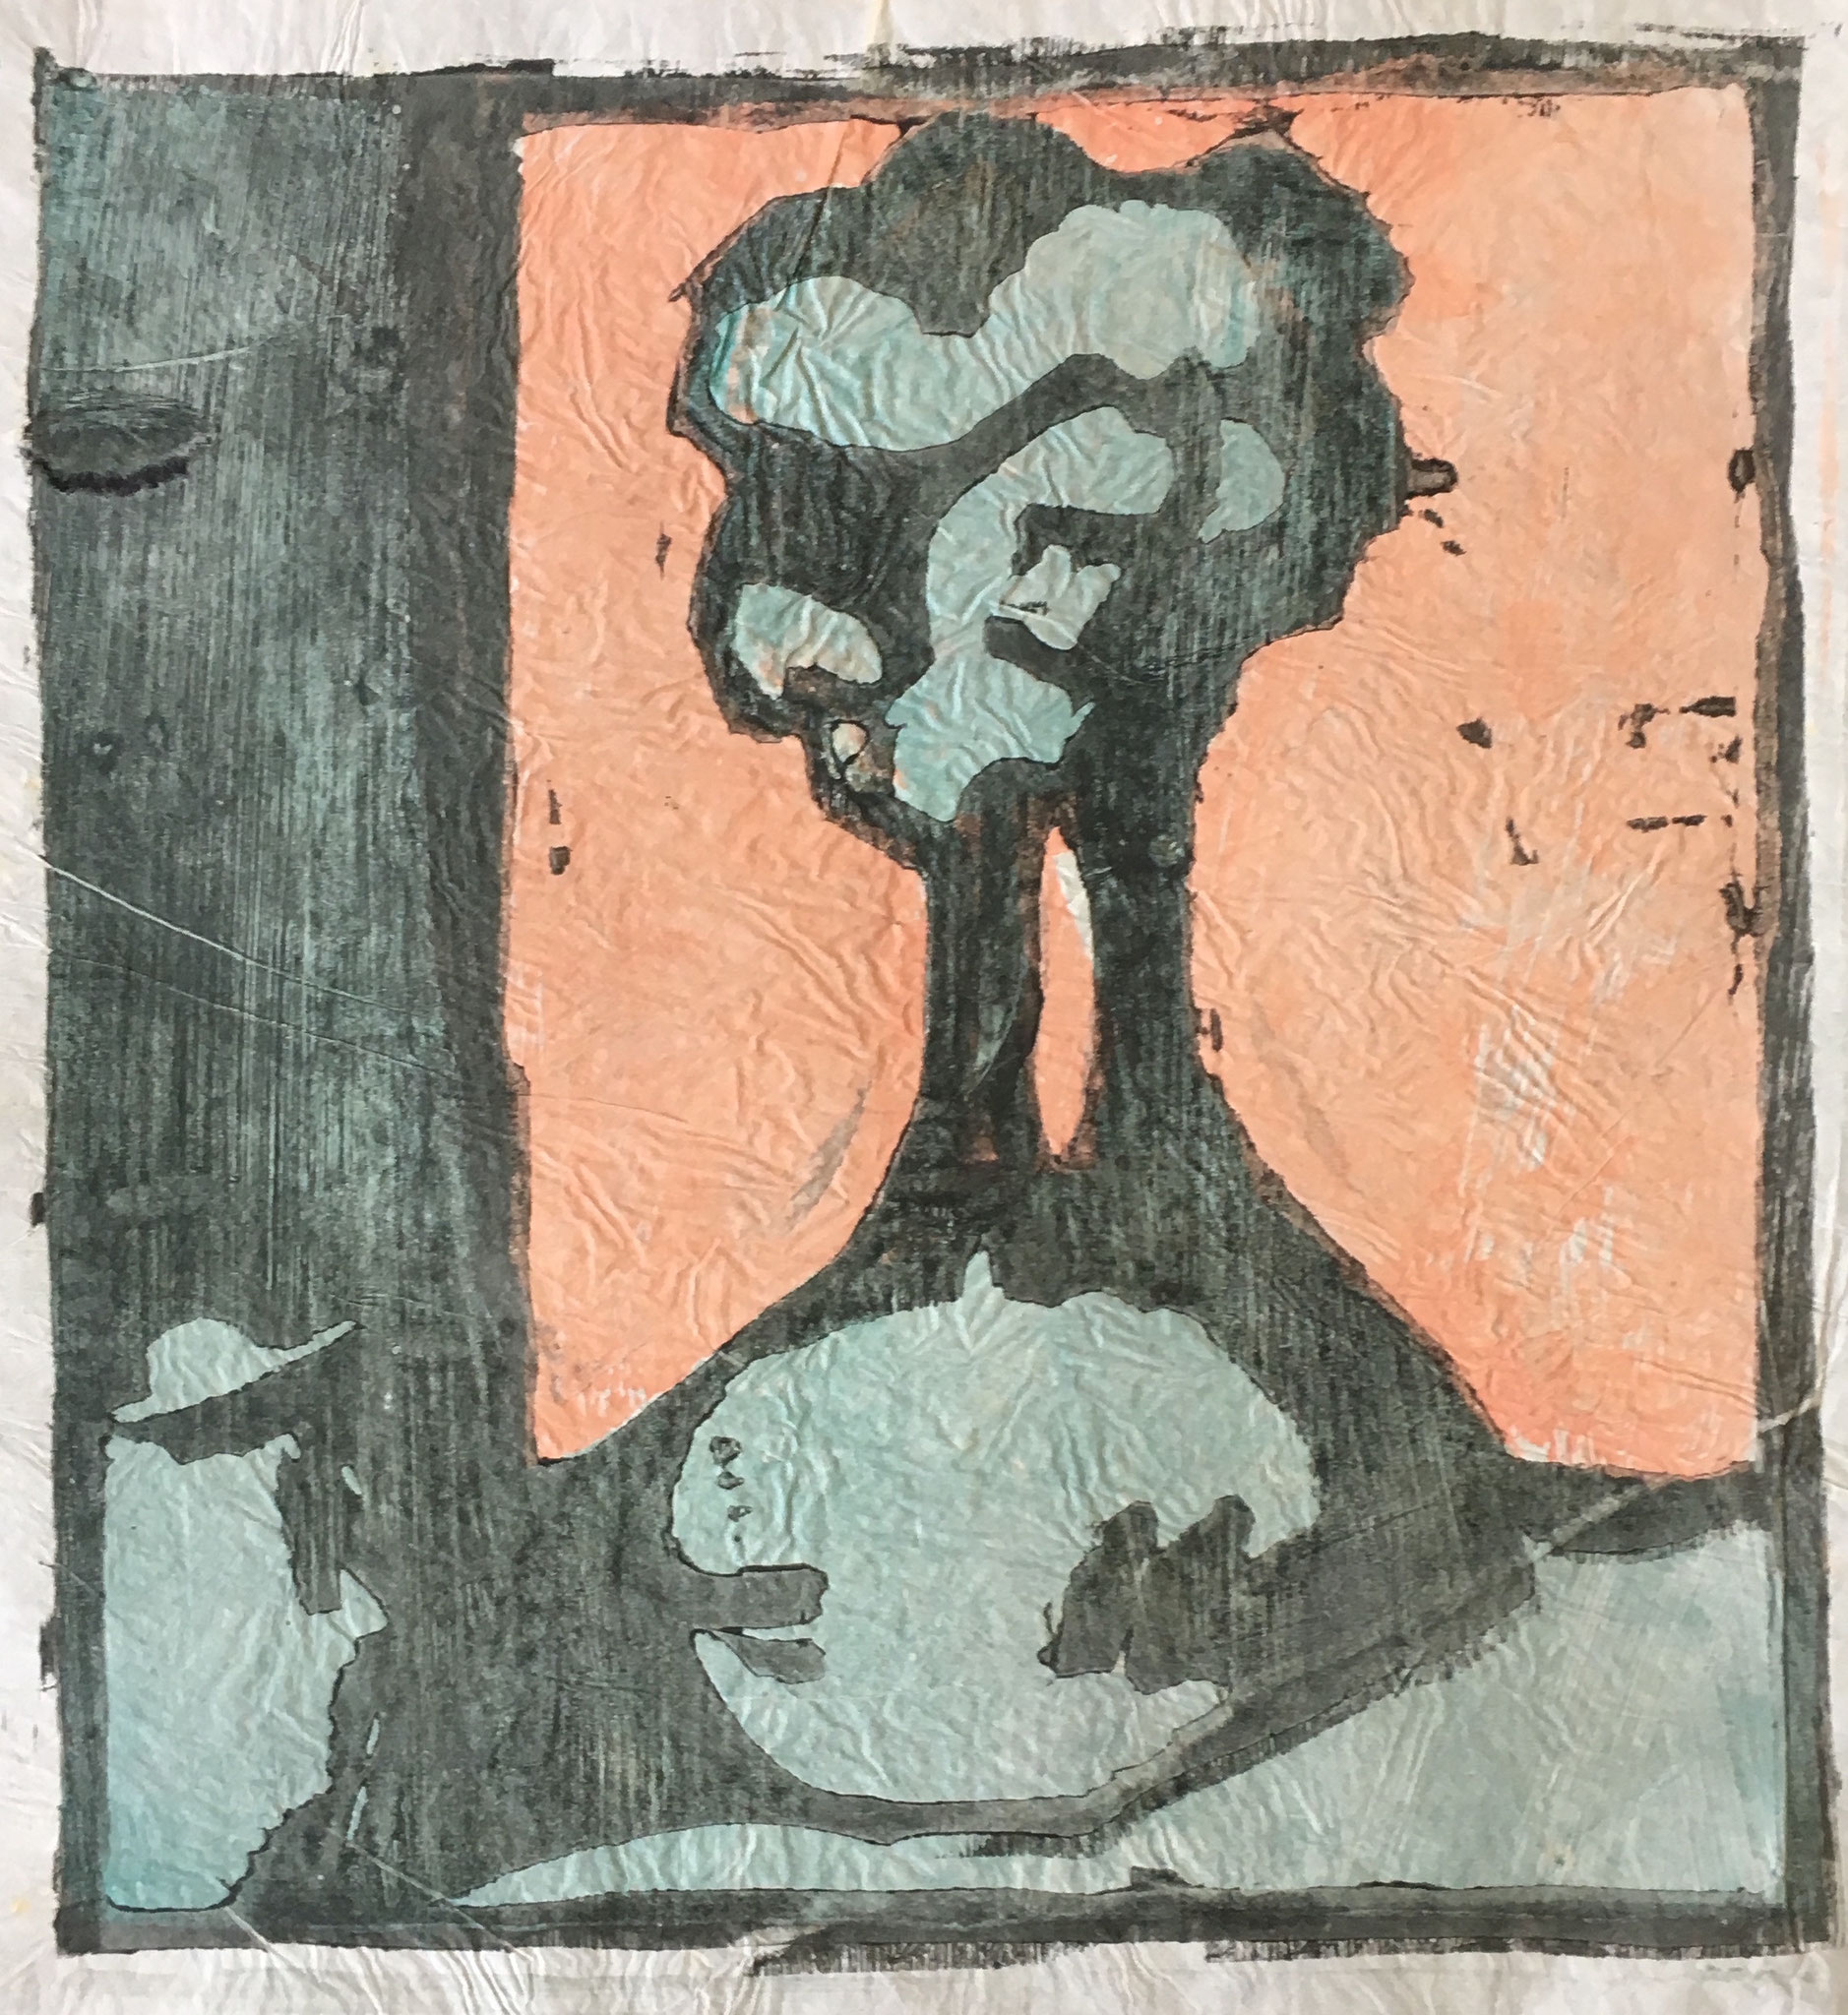 Cuno Amiet, Vase with Flowers, Japanese paper, woodcut, 1908